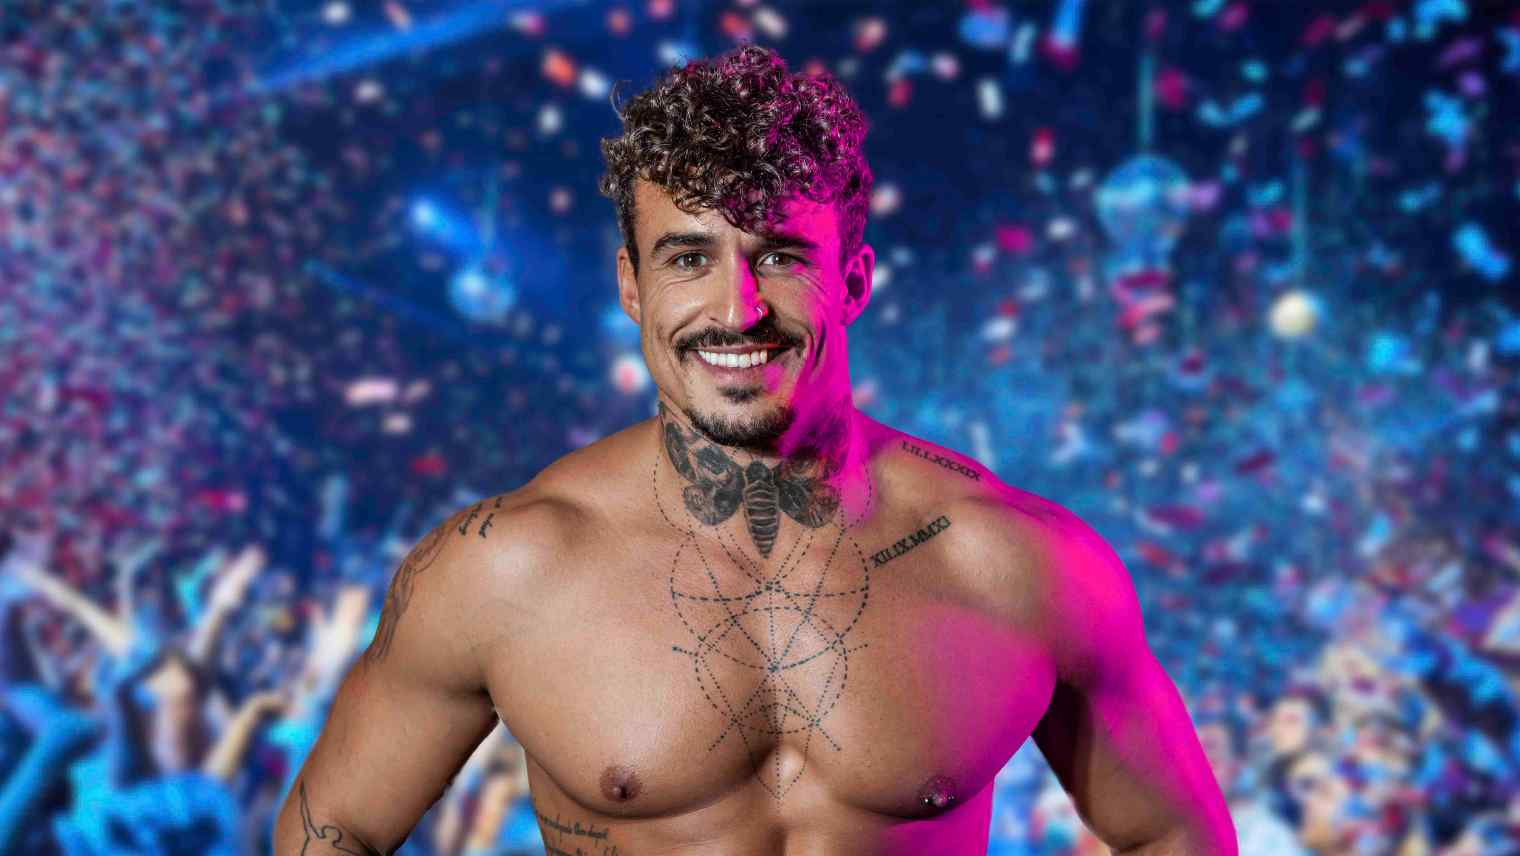 Male Strippers | The Ultimate Hen Party Inspiration Guide for hen weekends